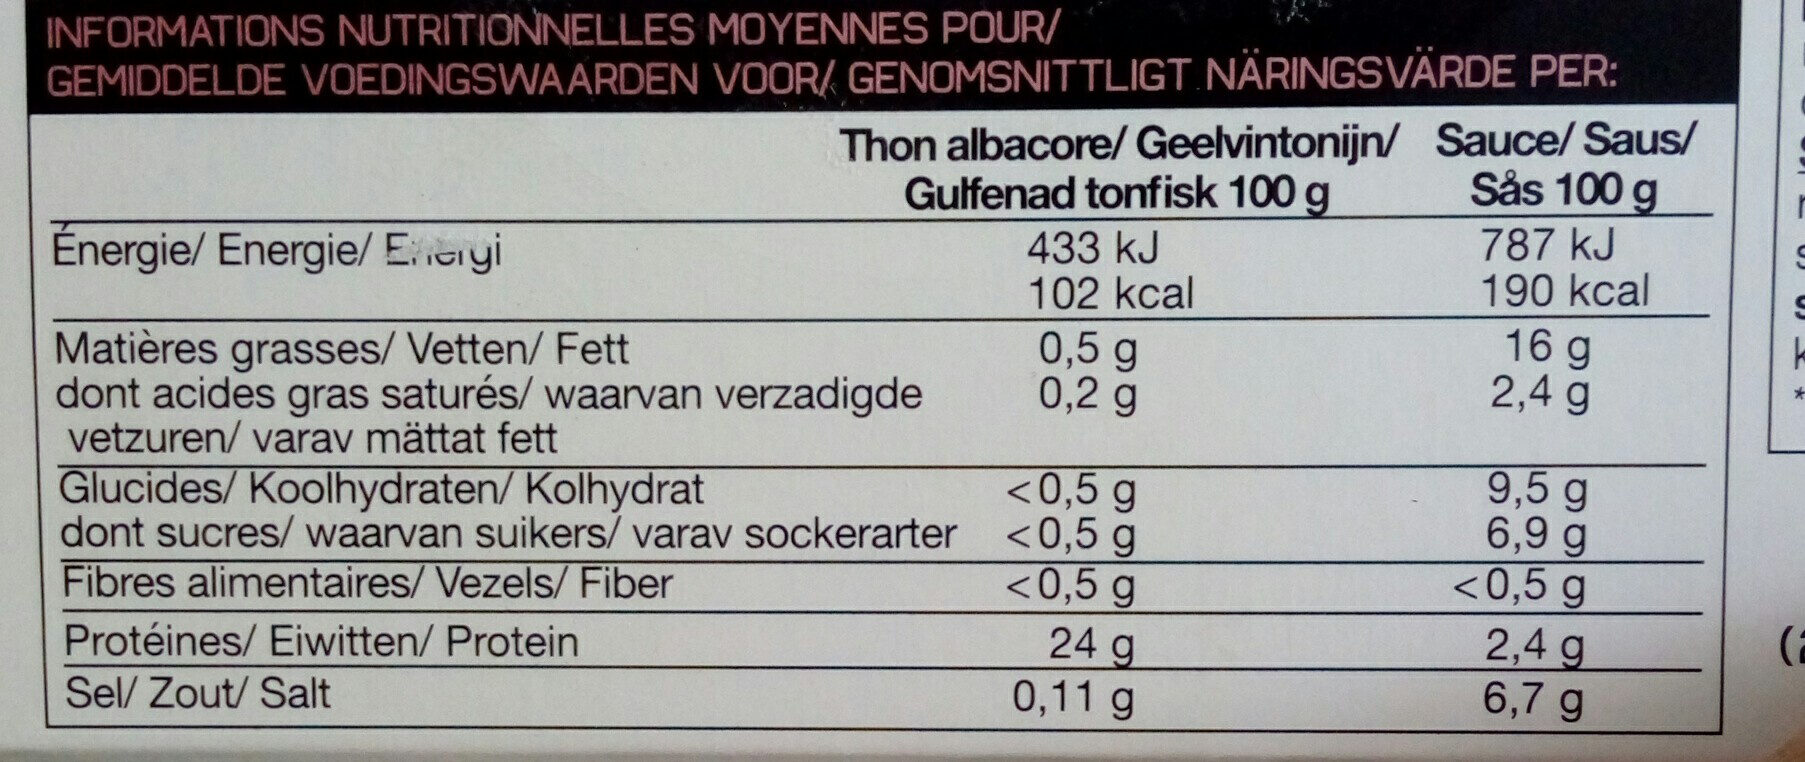 Tartare thon albacore - Informations nutritionnelles